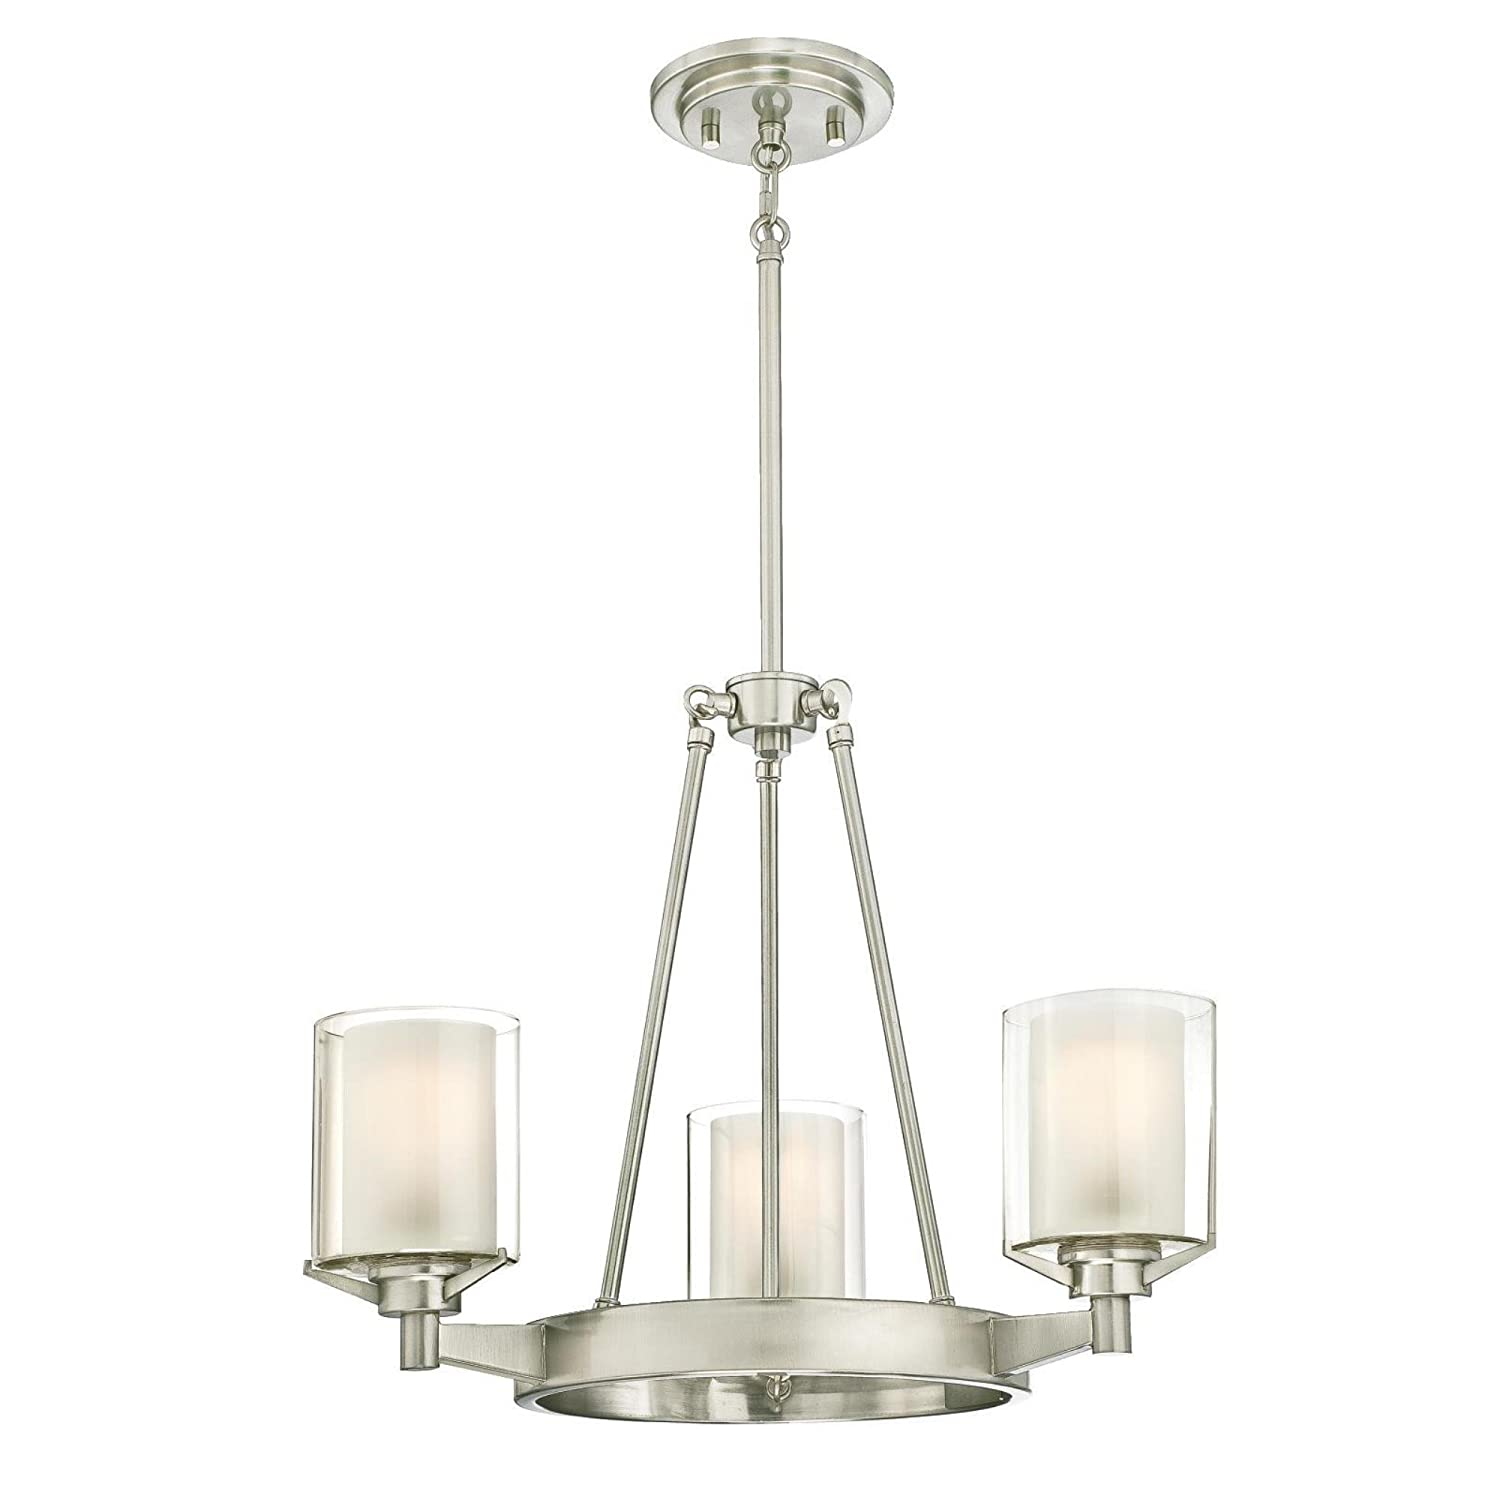 Westinghouse Lighting 6330800 Glenford Three-Light Indoor Chandelier Brushed Nickel Finish with Frosted Inner and Clear Glass Outer Shades 3